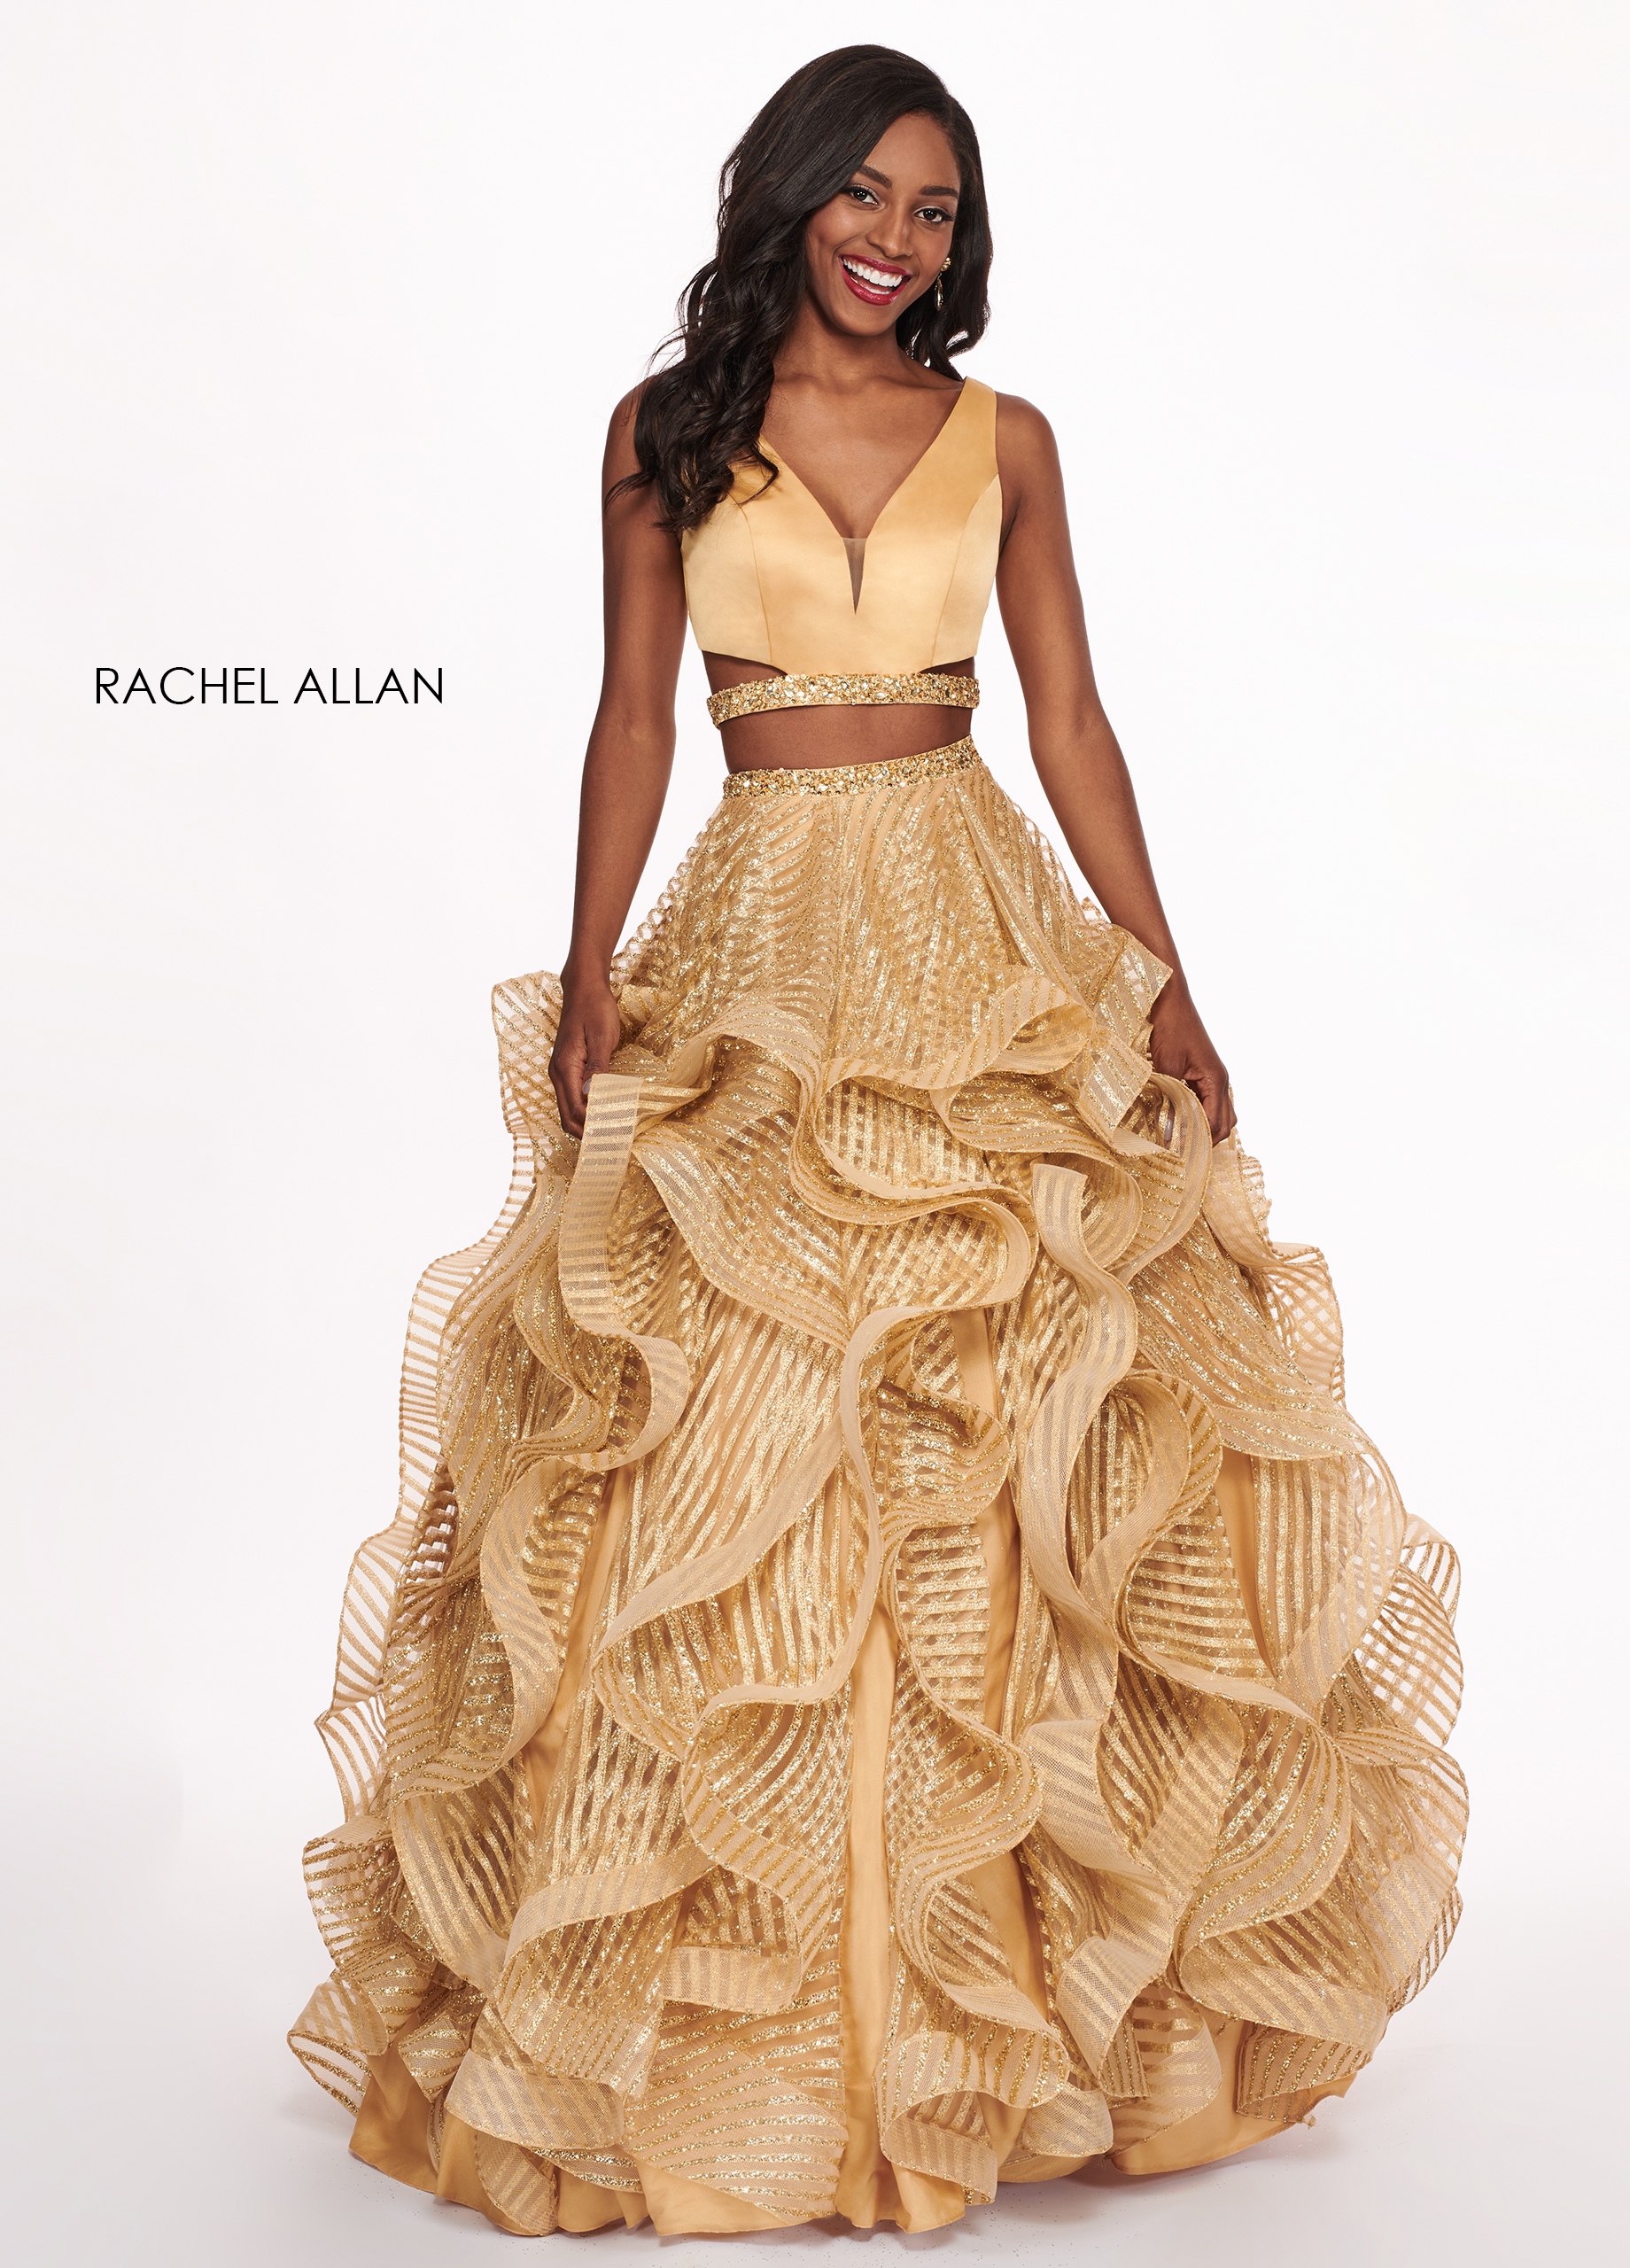 V-Neck Ball Gowns Prom Dresses in Gold Color